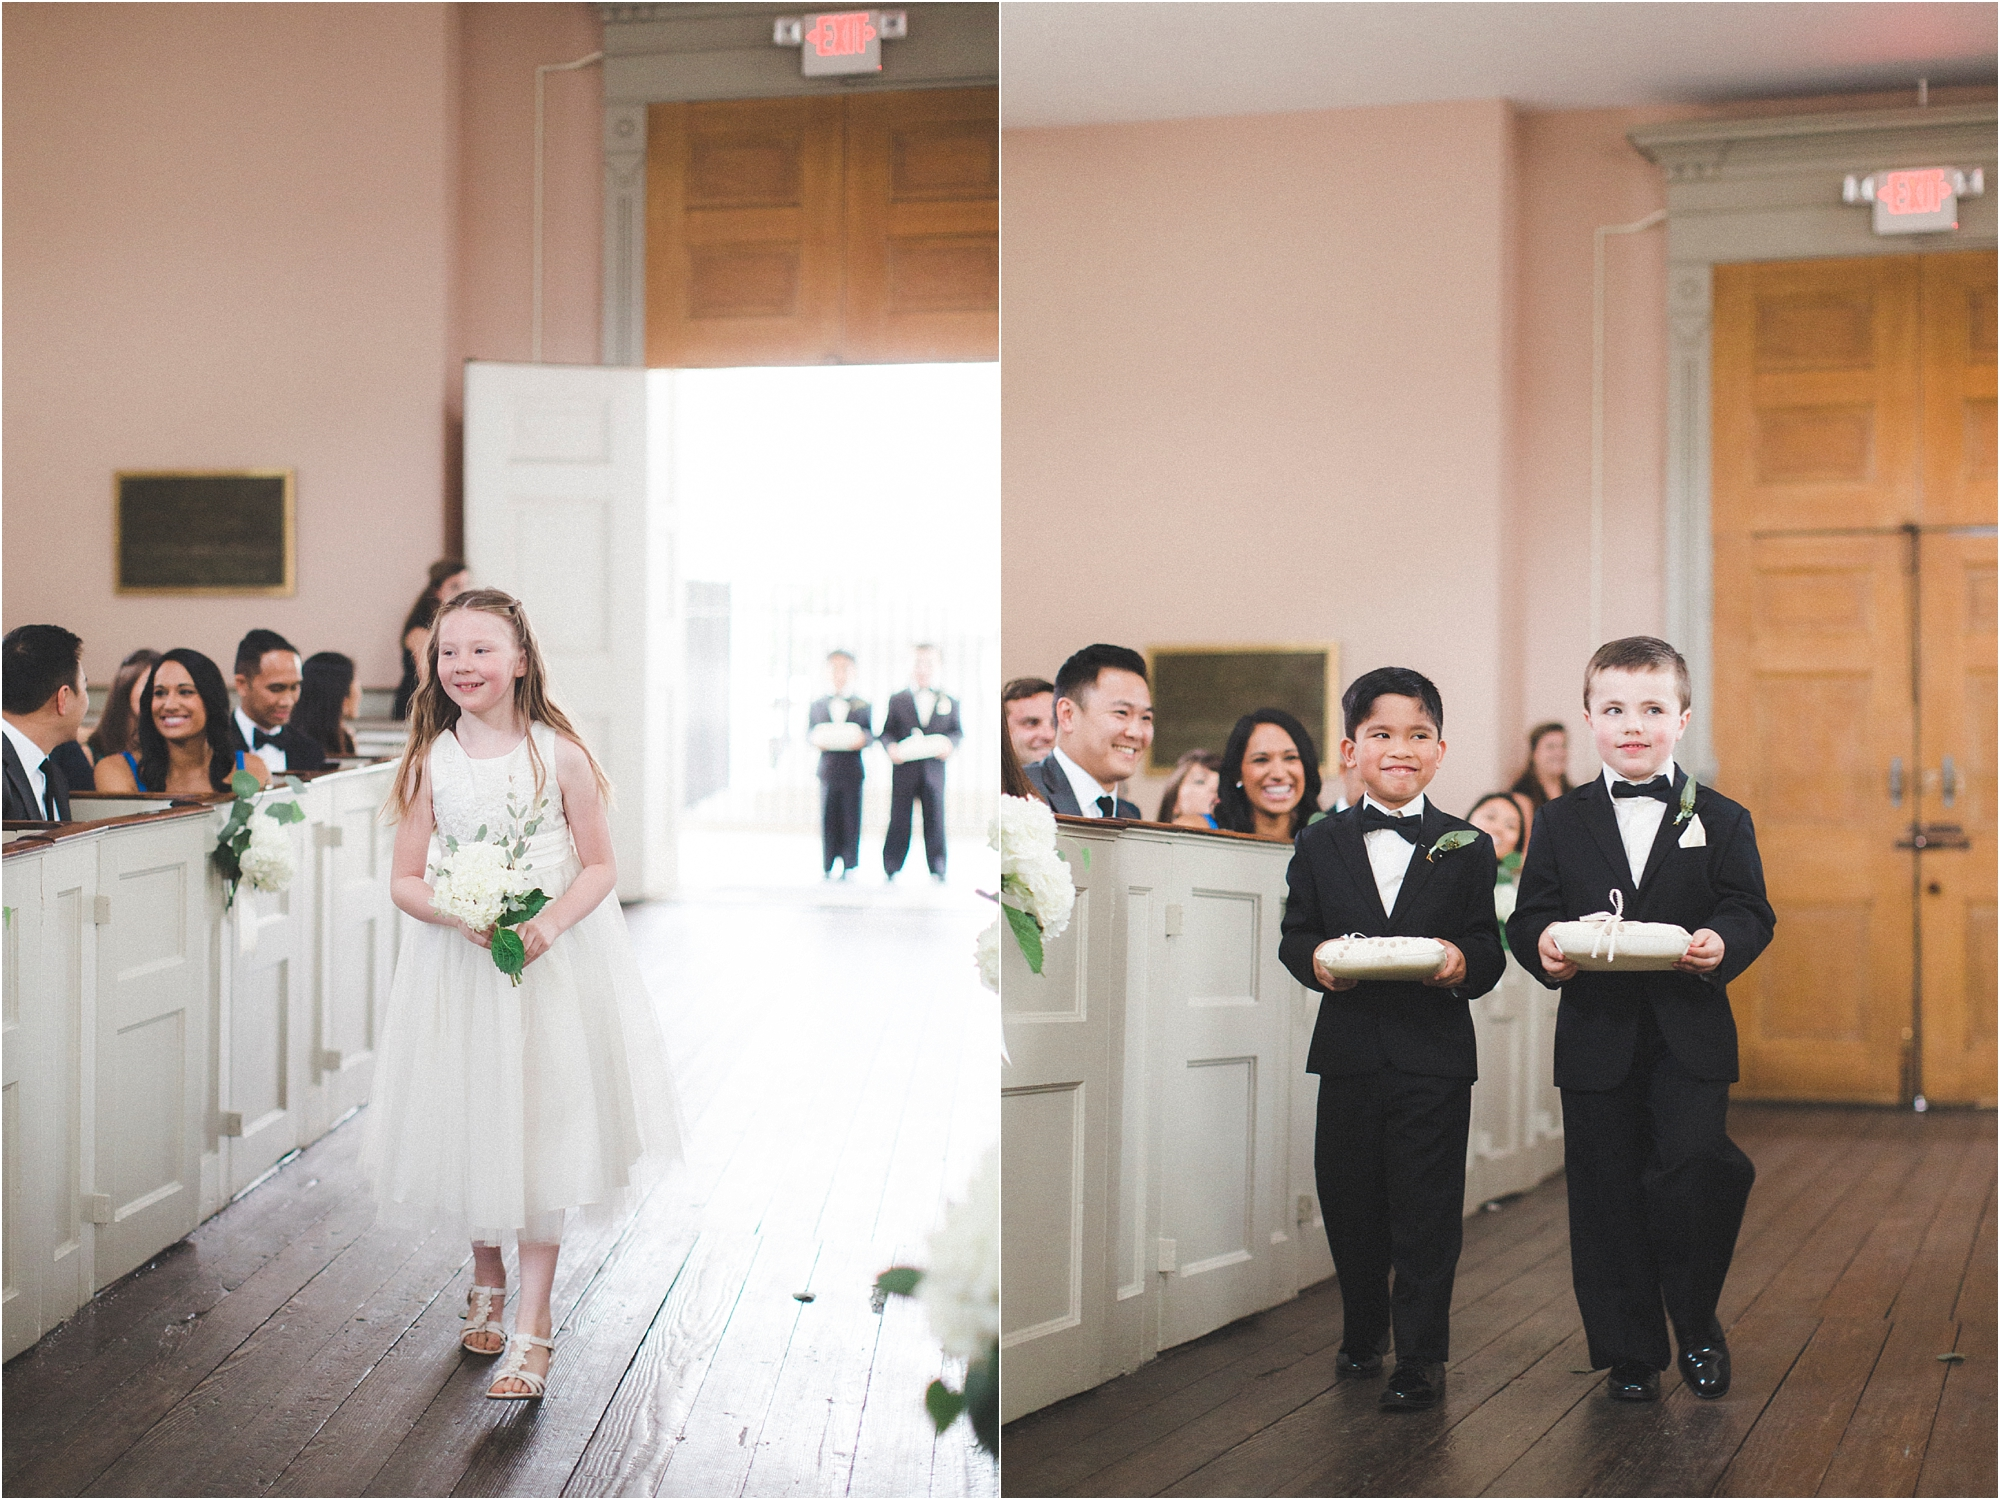 stephanie-yonce-photography-historic-church-virginia-museu-fine-arts-wedding-photos_039.JPG